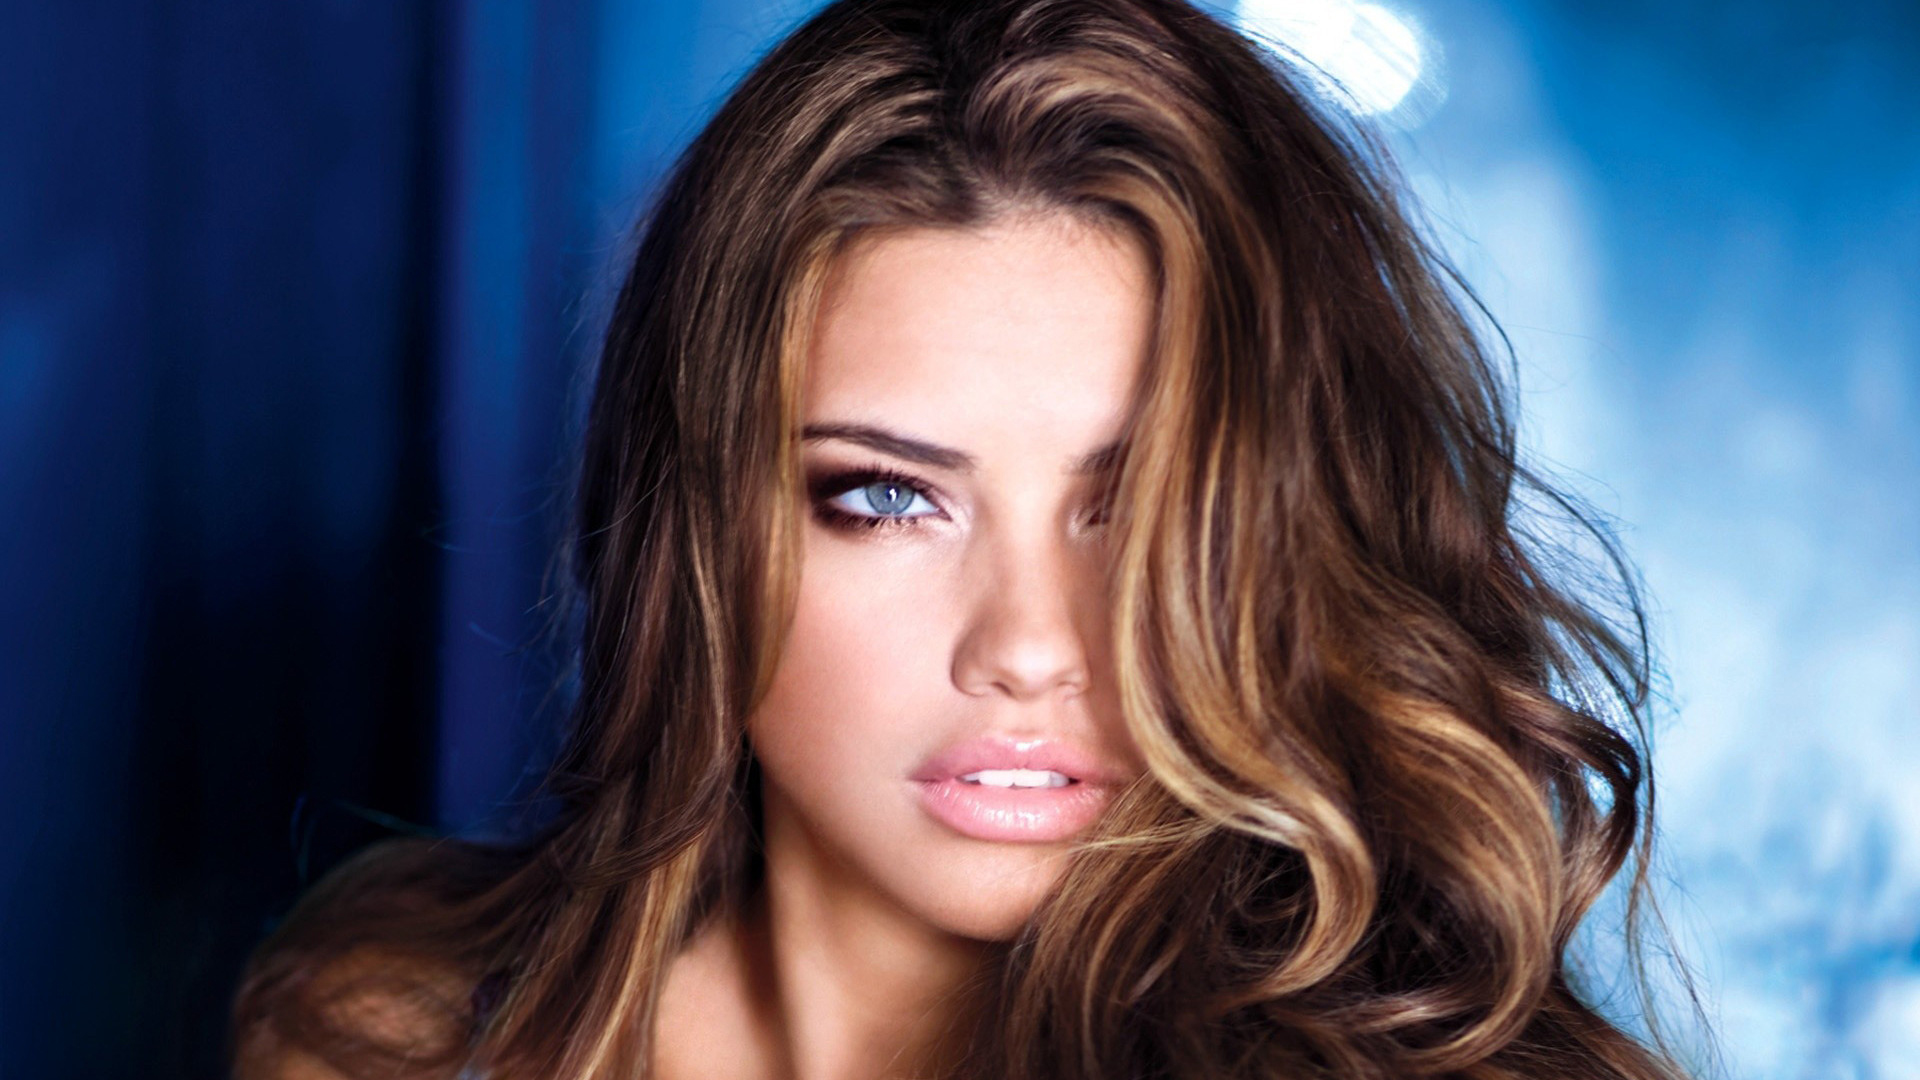 Adriana lima hot wallpapers voltagebd Gallery